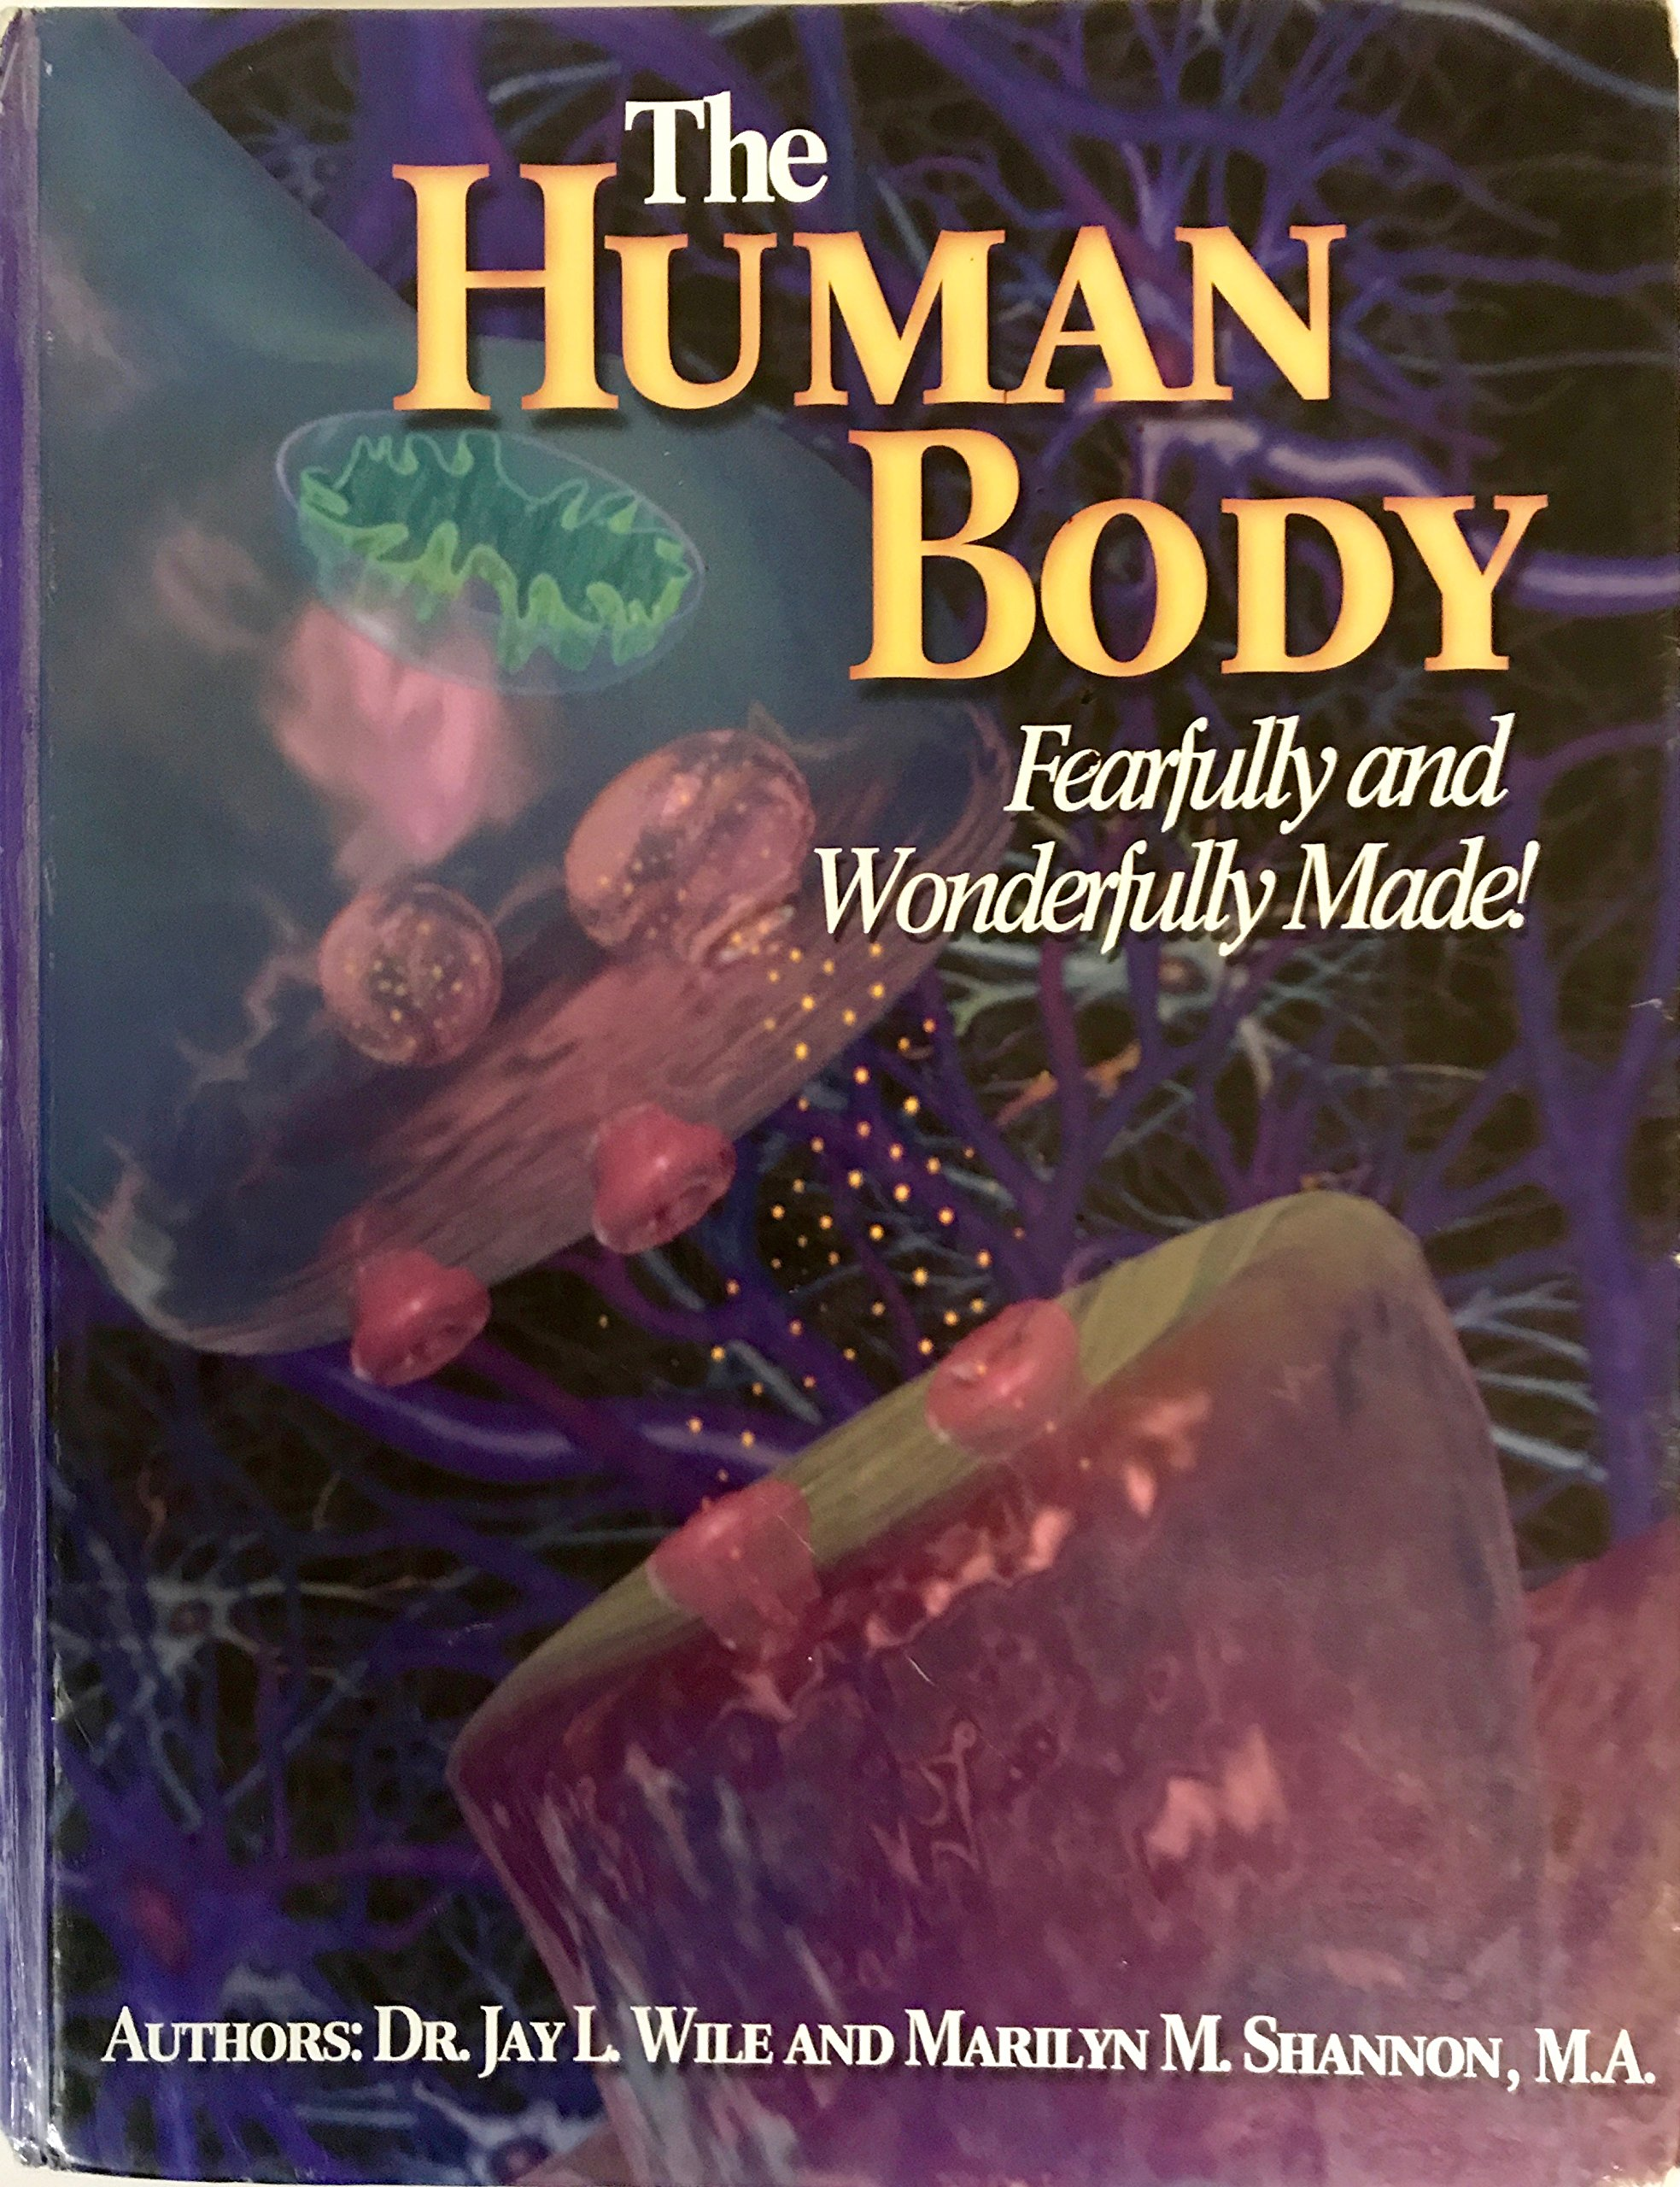 The Human Body: Fearfully And Wonderfully Made: Jay L. Wile, Marilyn ...